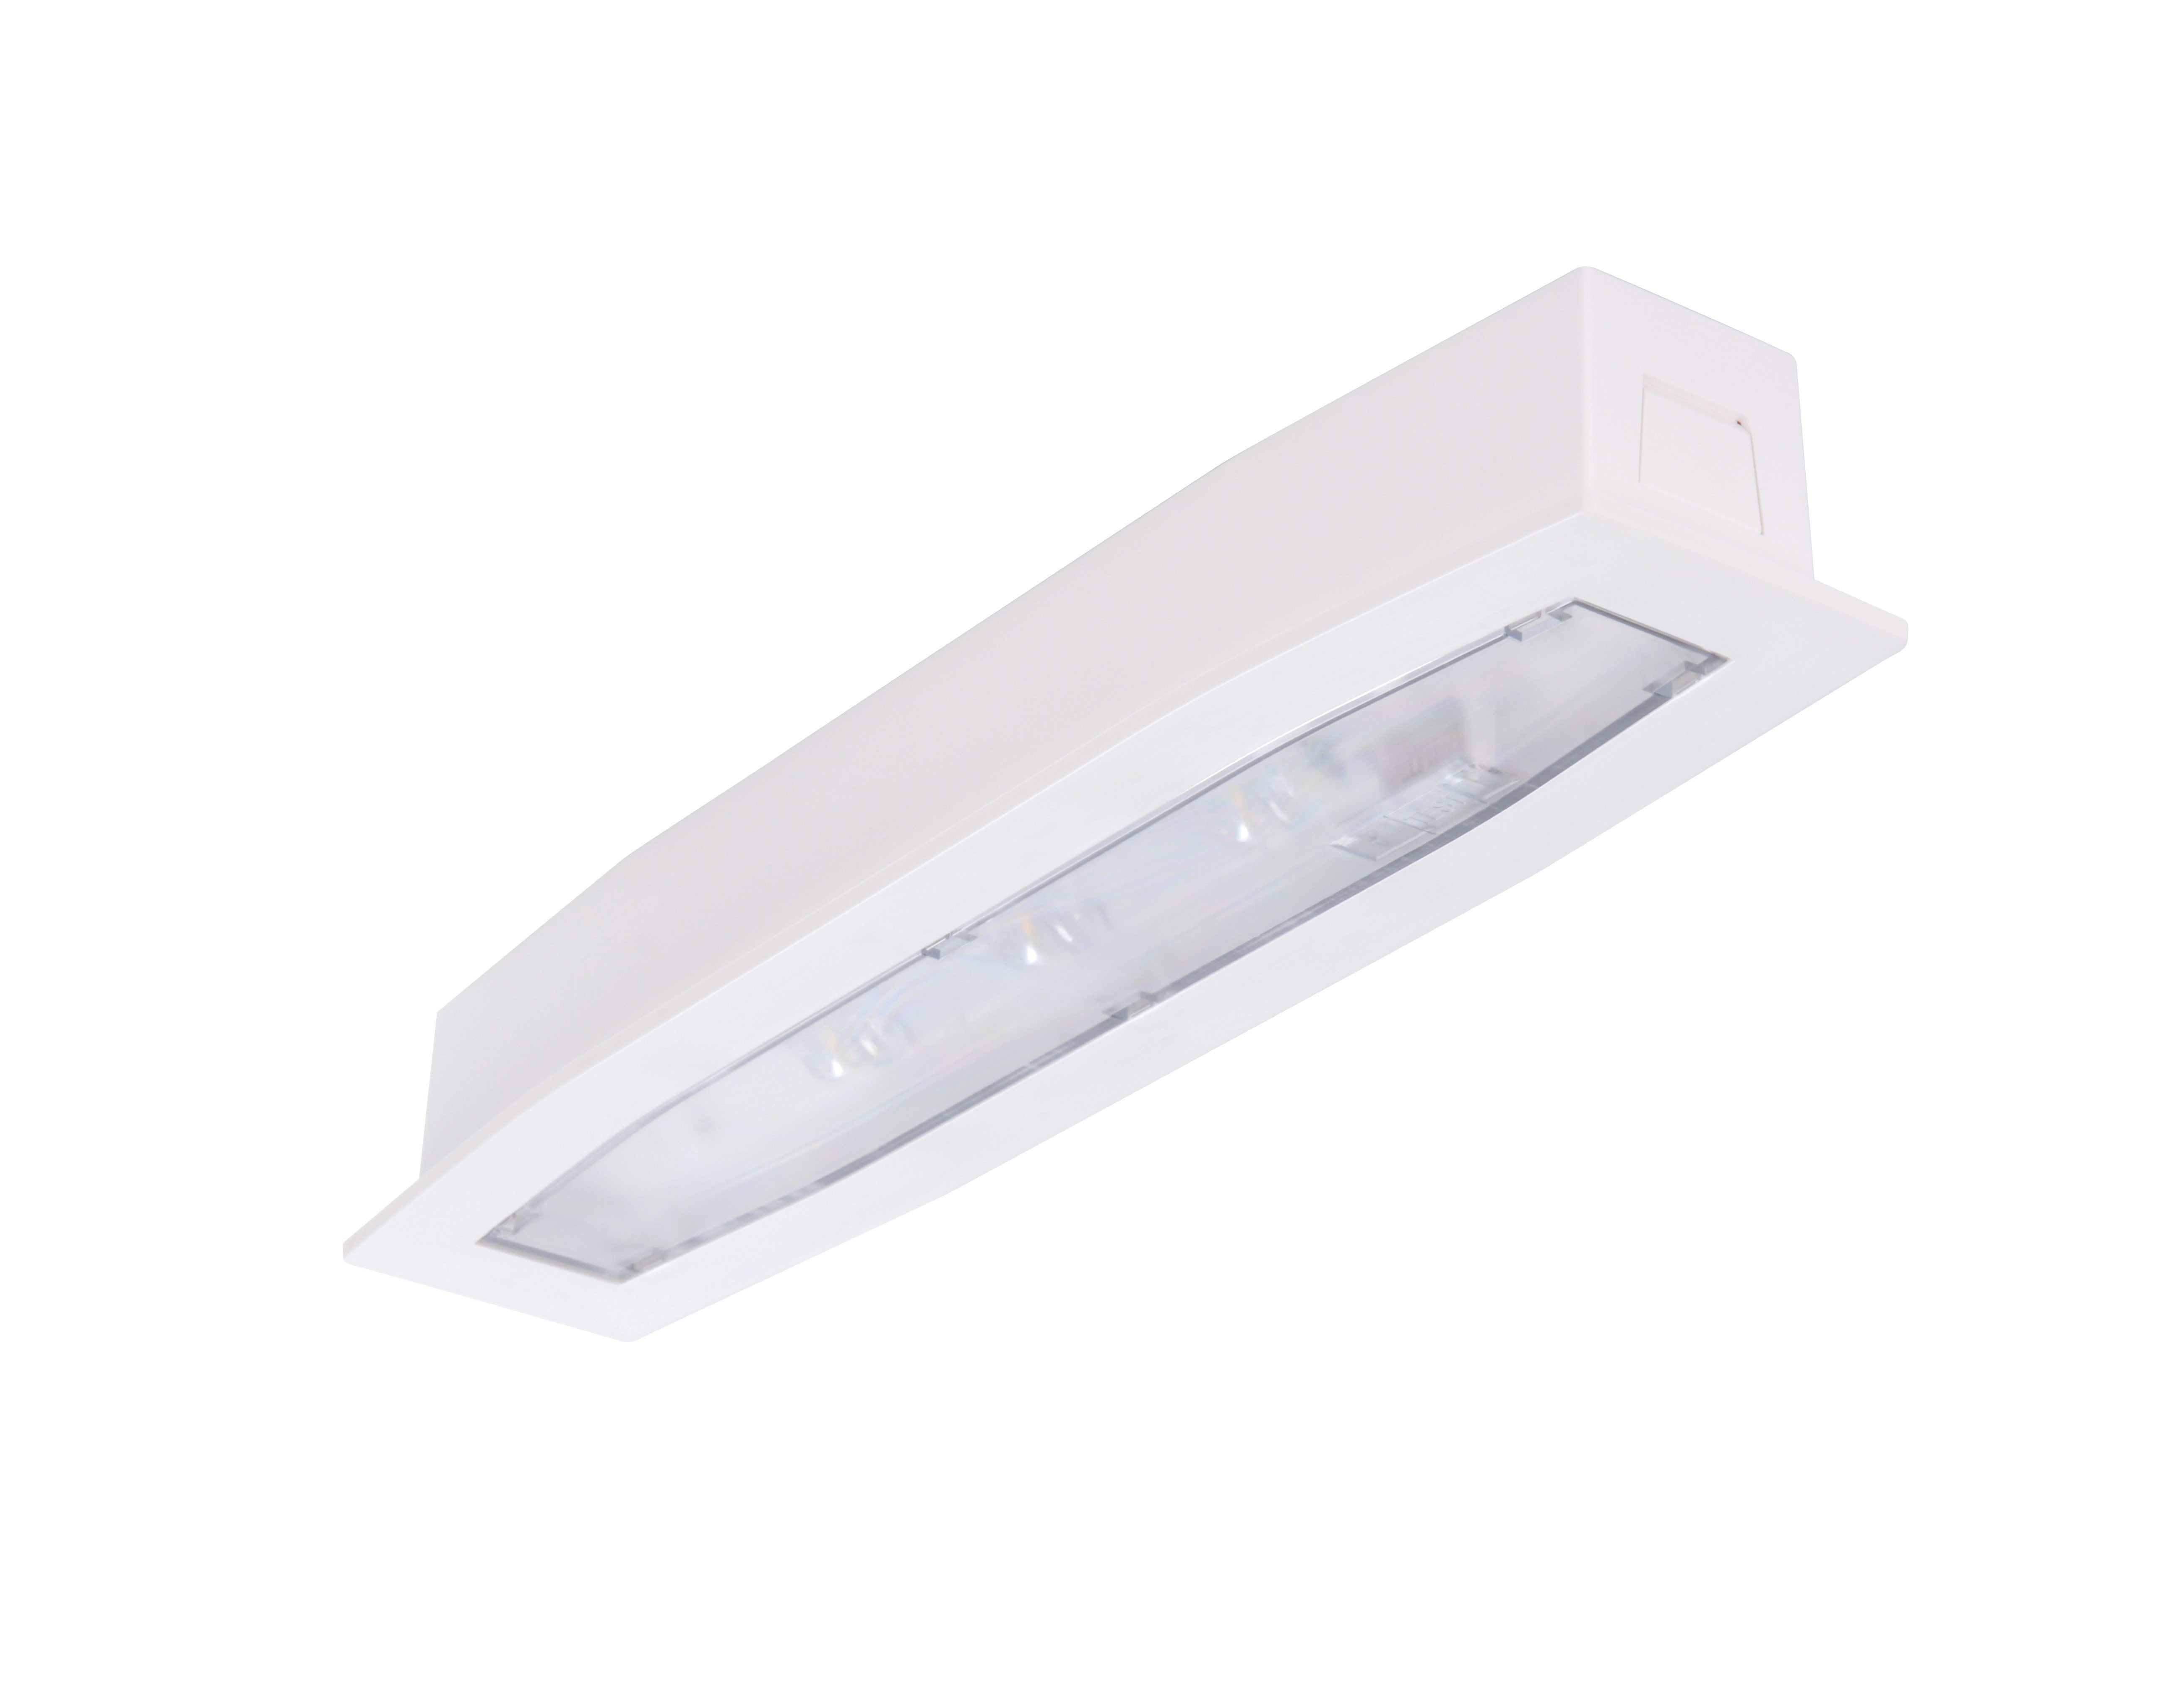 Lampa antipanica led Intelight 94523   3h nementinut test automat3